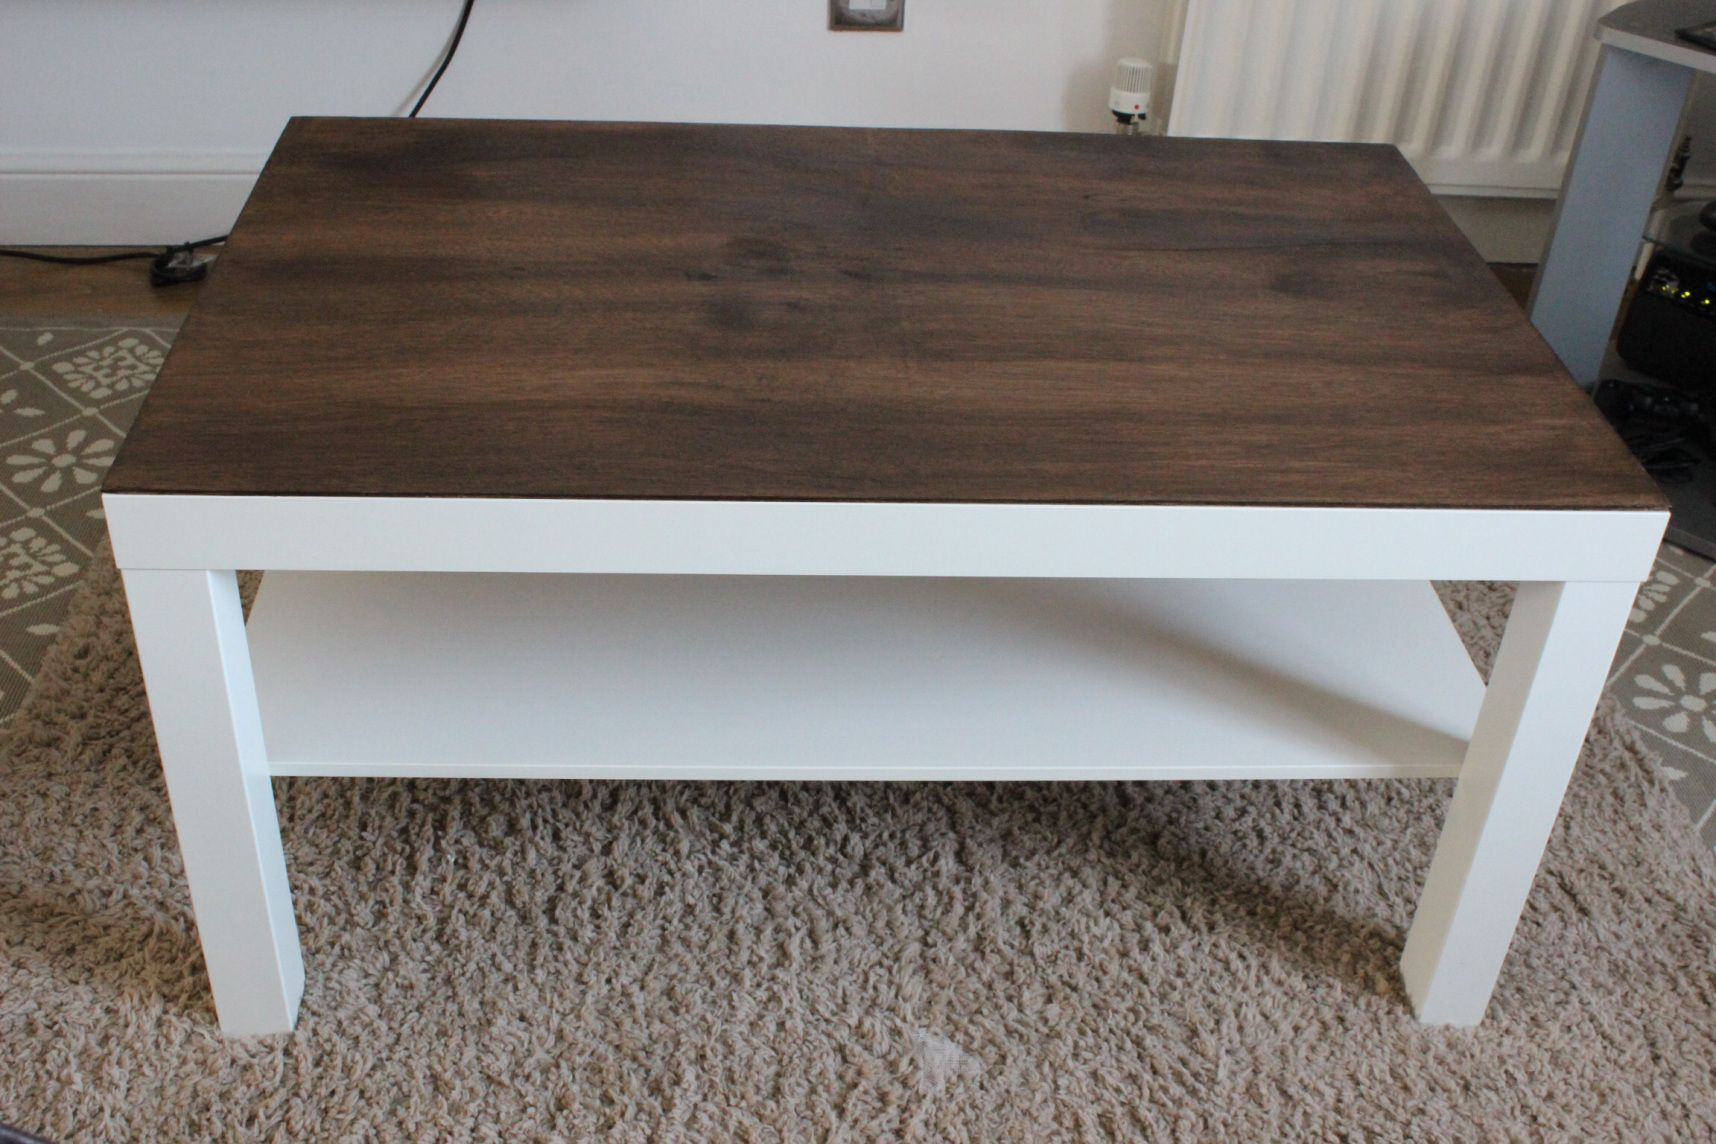 Ikea Lack Coffee Table Hack | Home | Pinterest | Lack ...